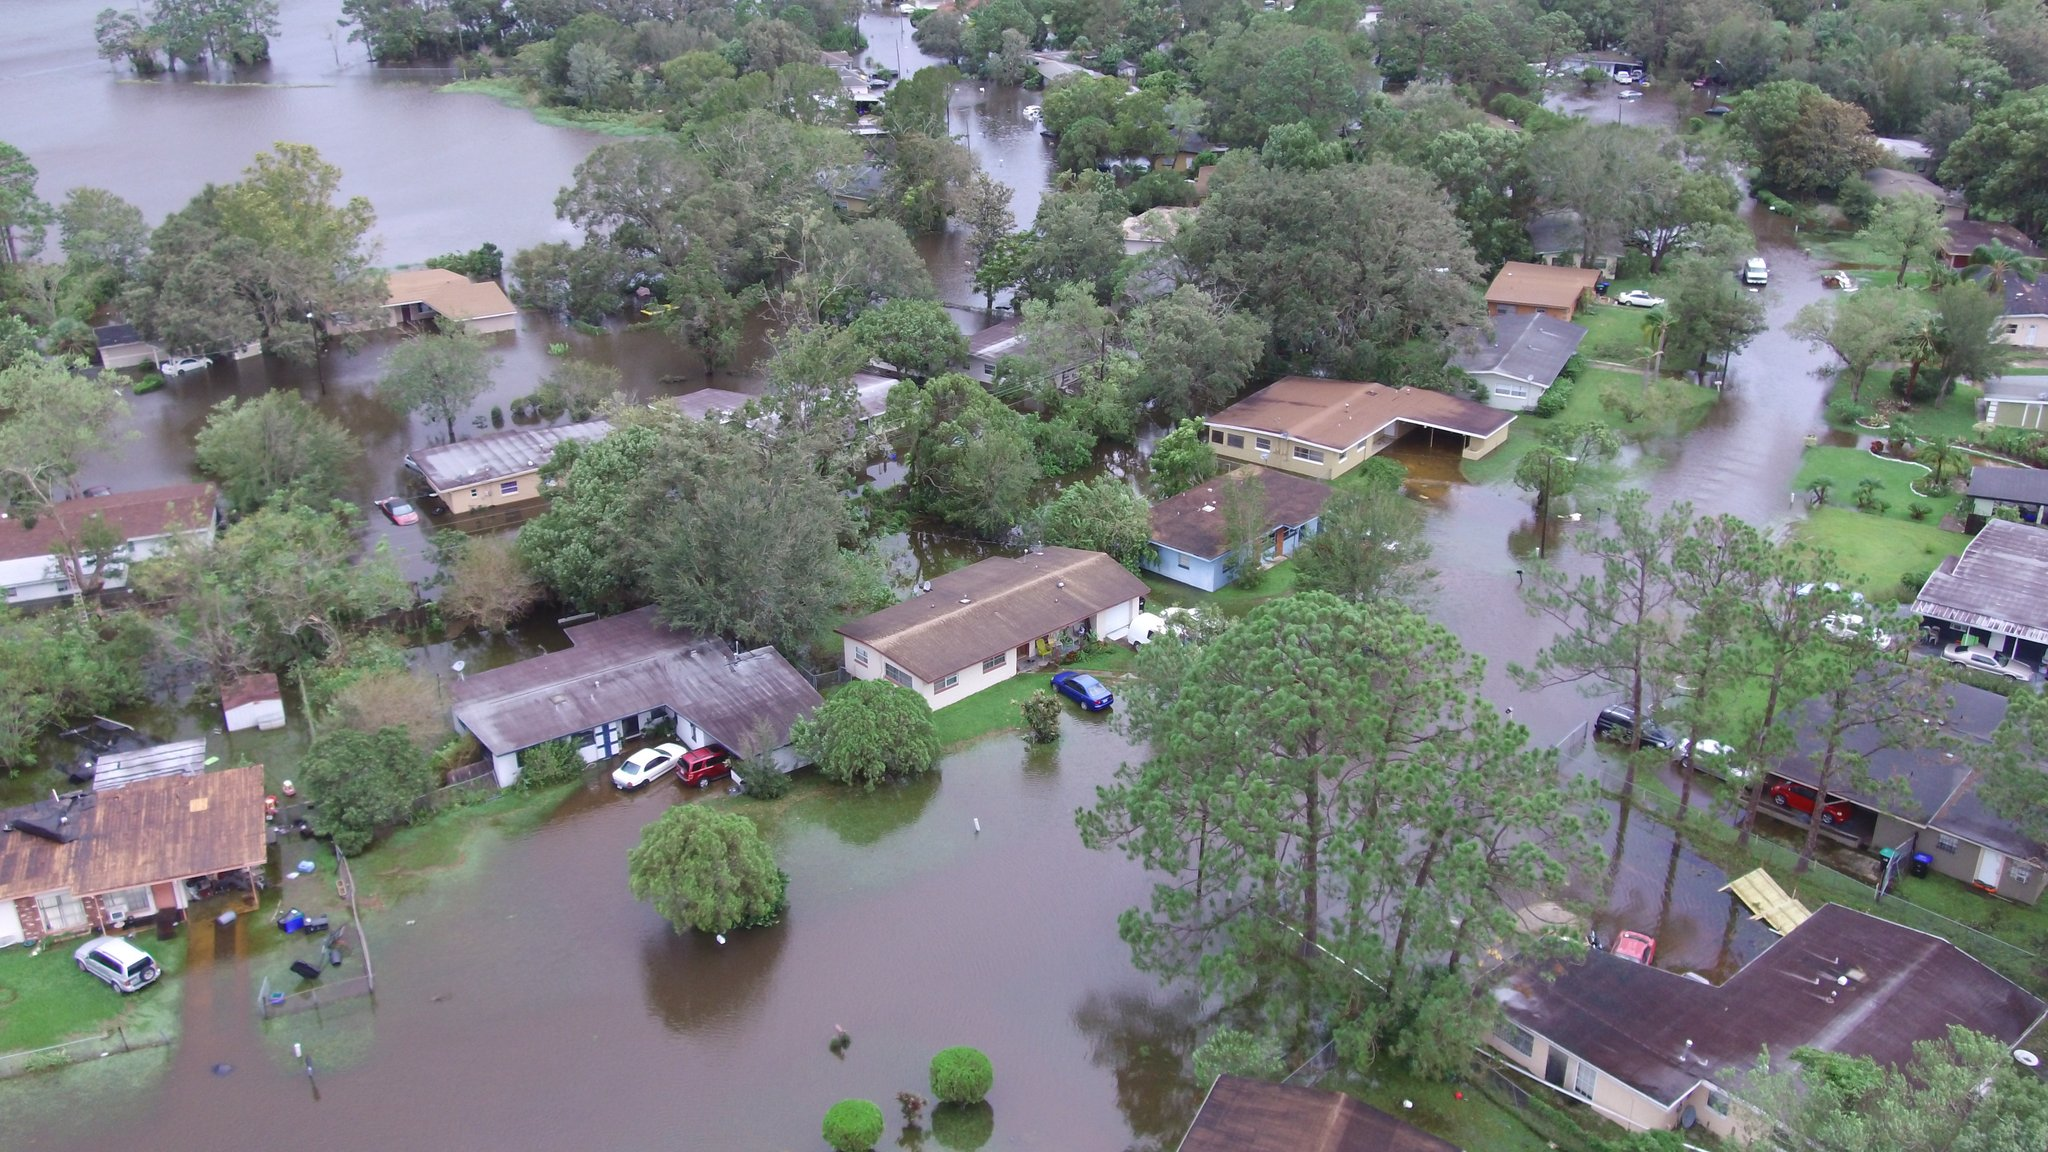 "<div class=""meta image-caption""><div class=""origin-logo origin-image none""><span>none</span></div><span class=""caption-text"">An aerial photo shows flooding in the Orlo Vista area of Orange County. (OCFireRescue/Twitter)</span></div>"